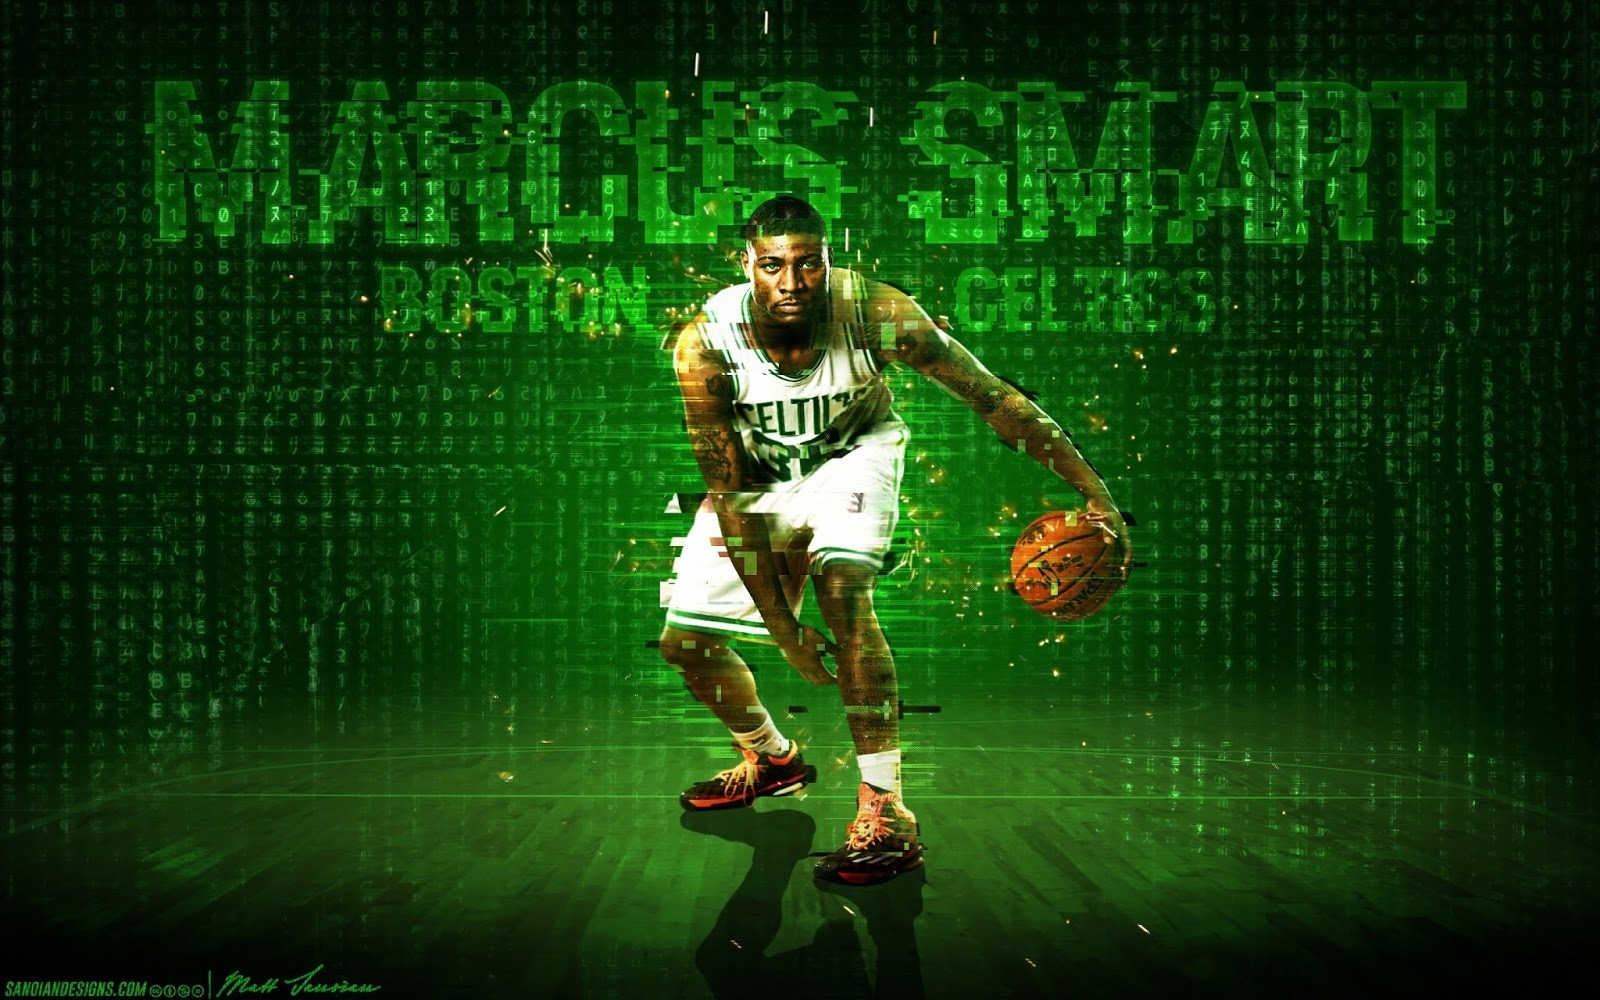 wallpaper wednesday: marcus smart | celticslife - boston celtics